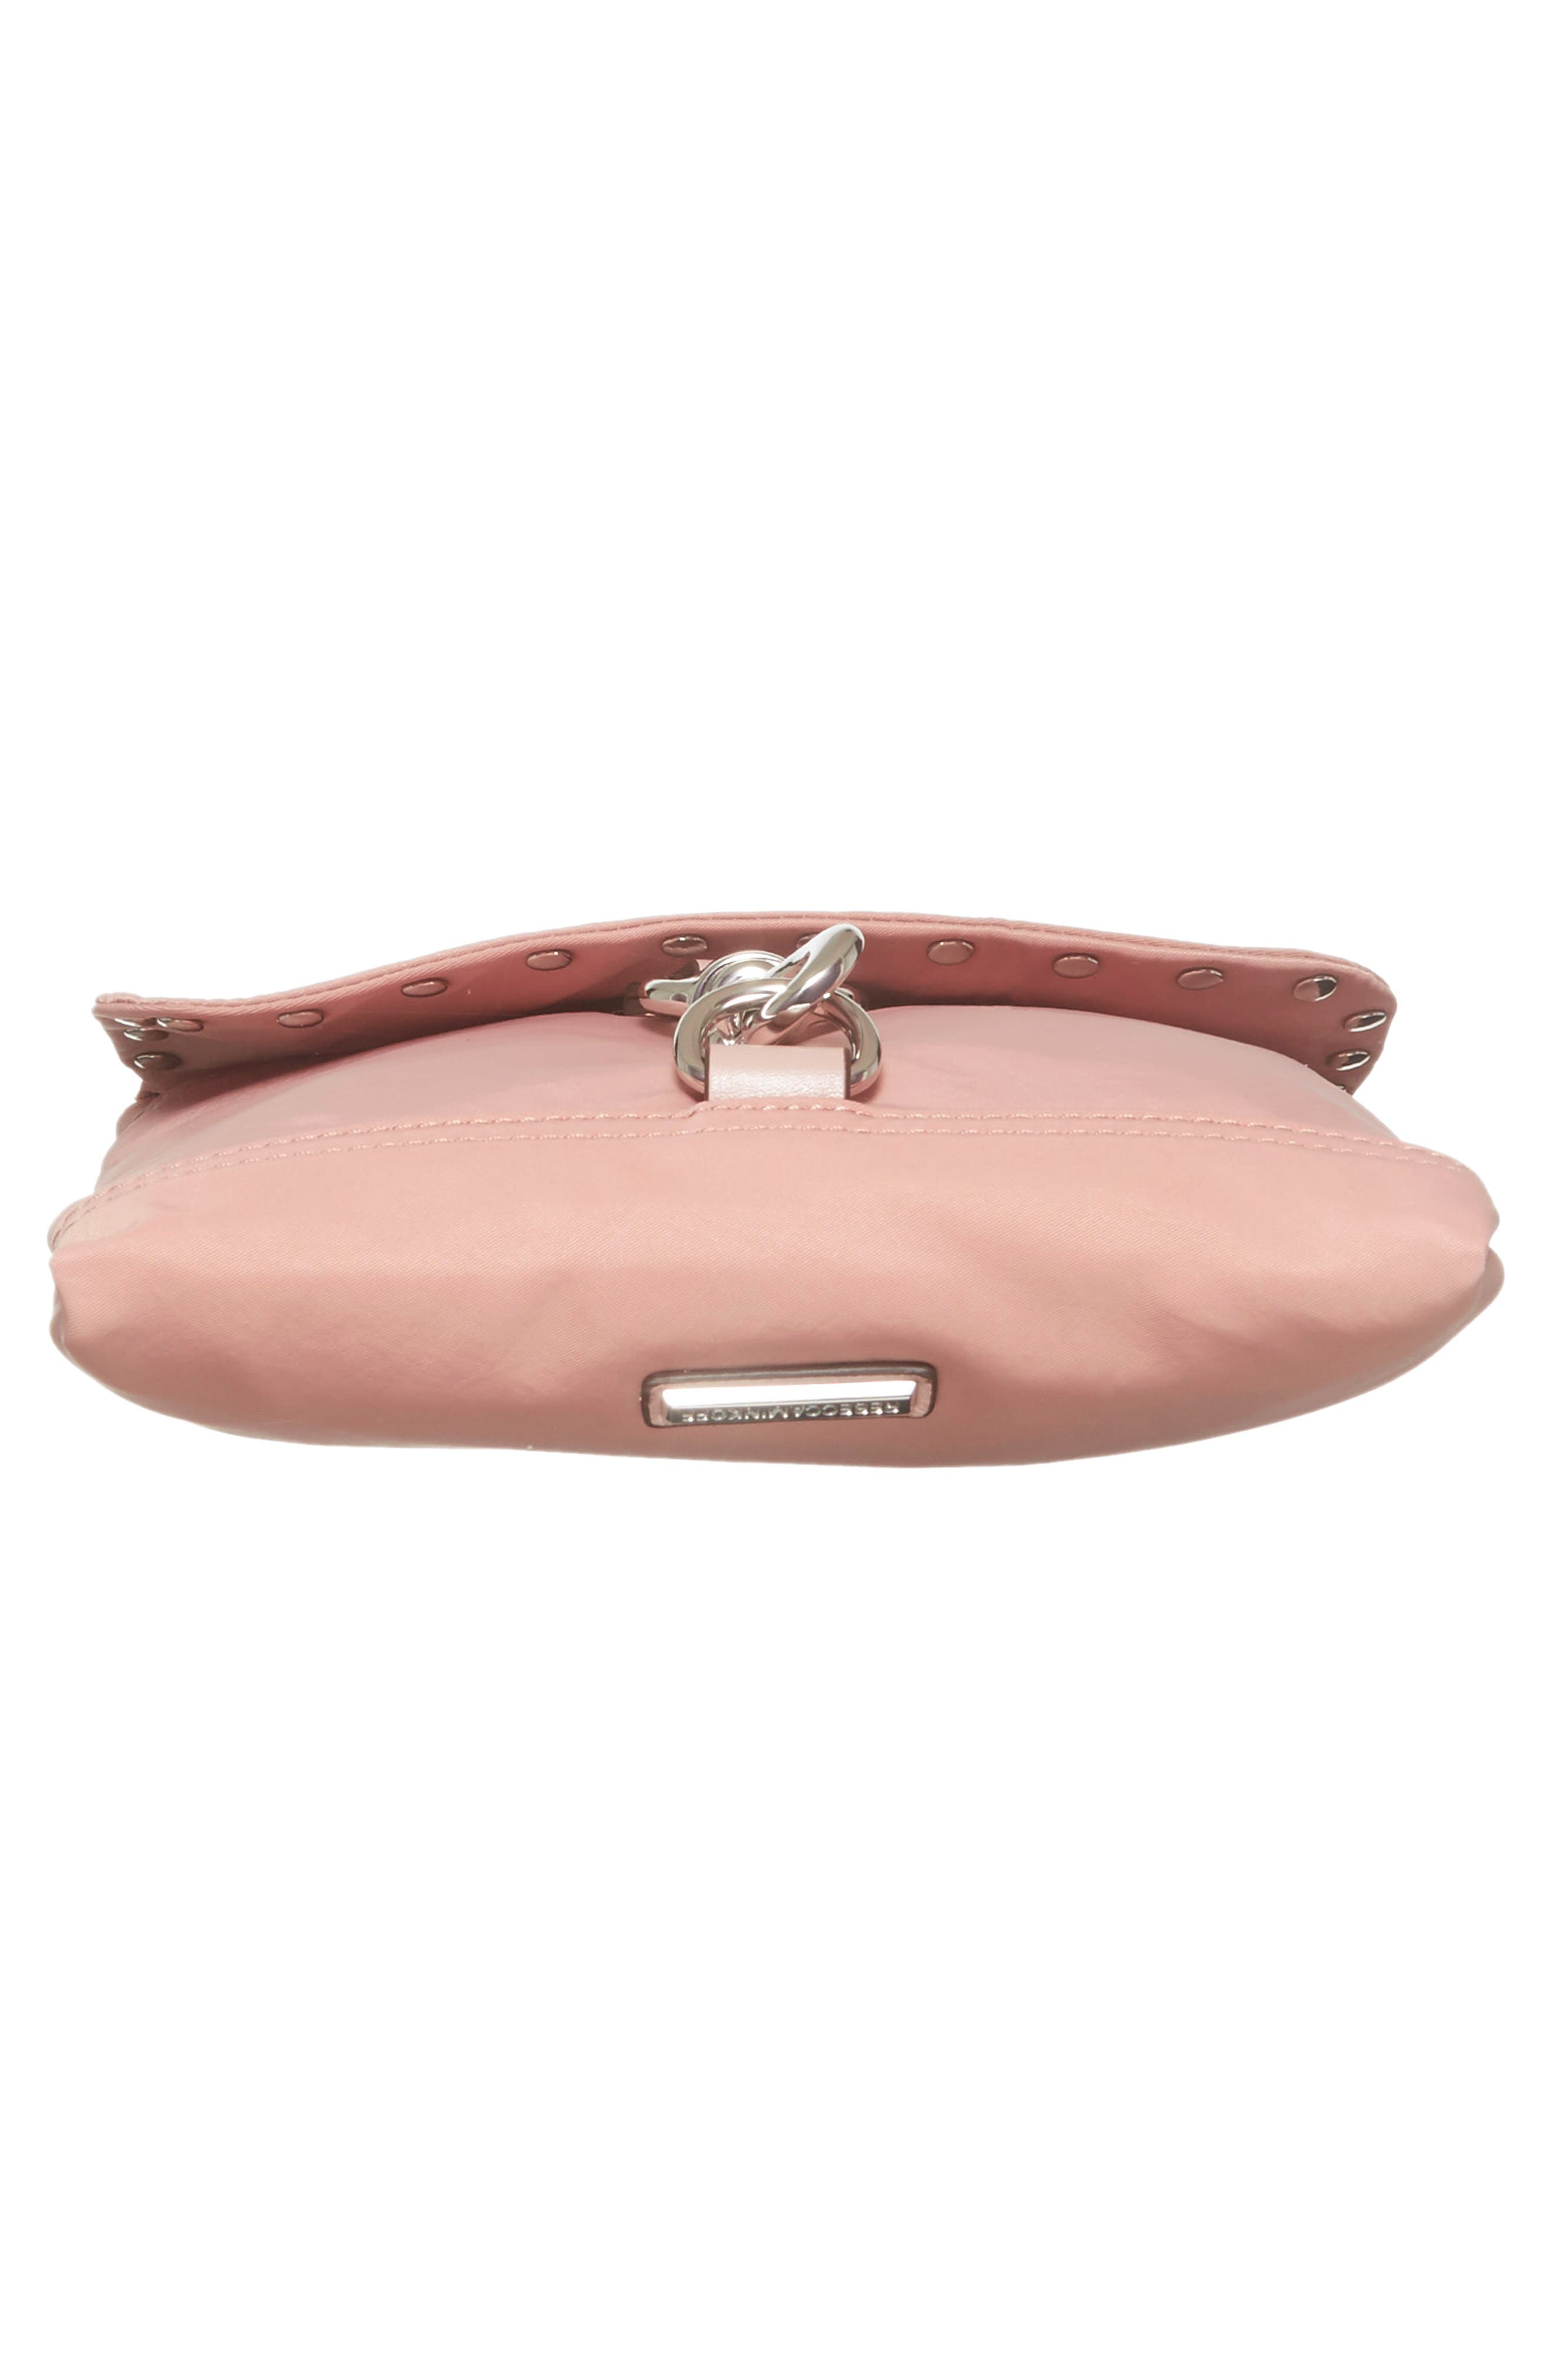 Nylon Flap Crossbody Bag,                             Alternate thumbnail 6, color,                             Vintage Pink